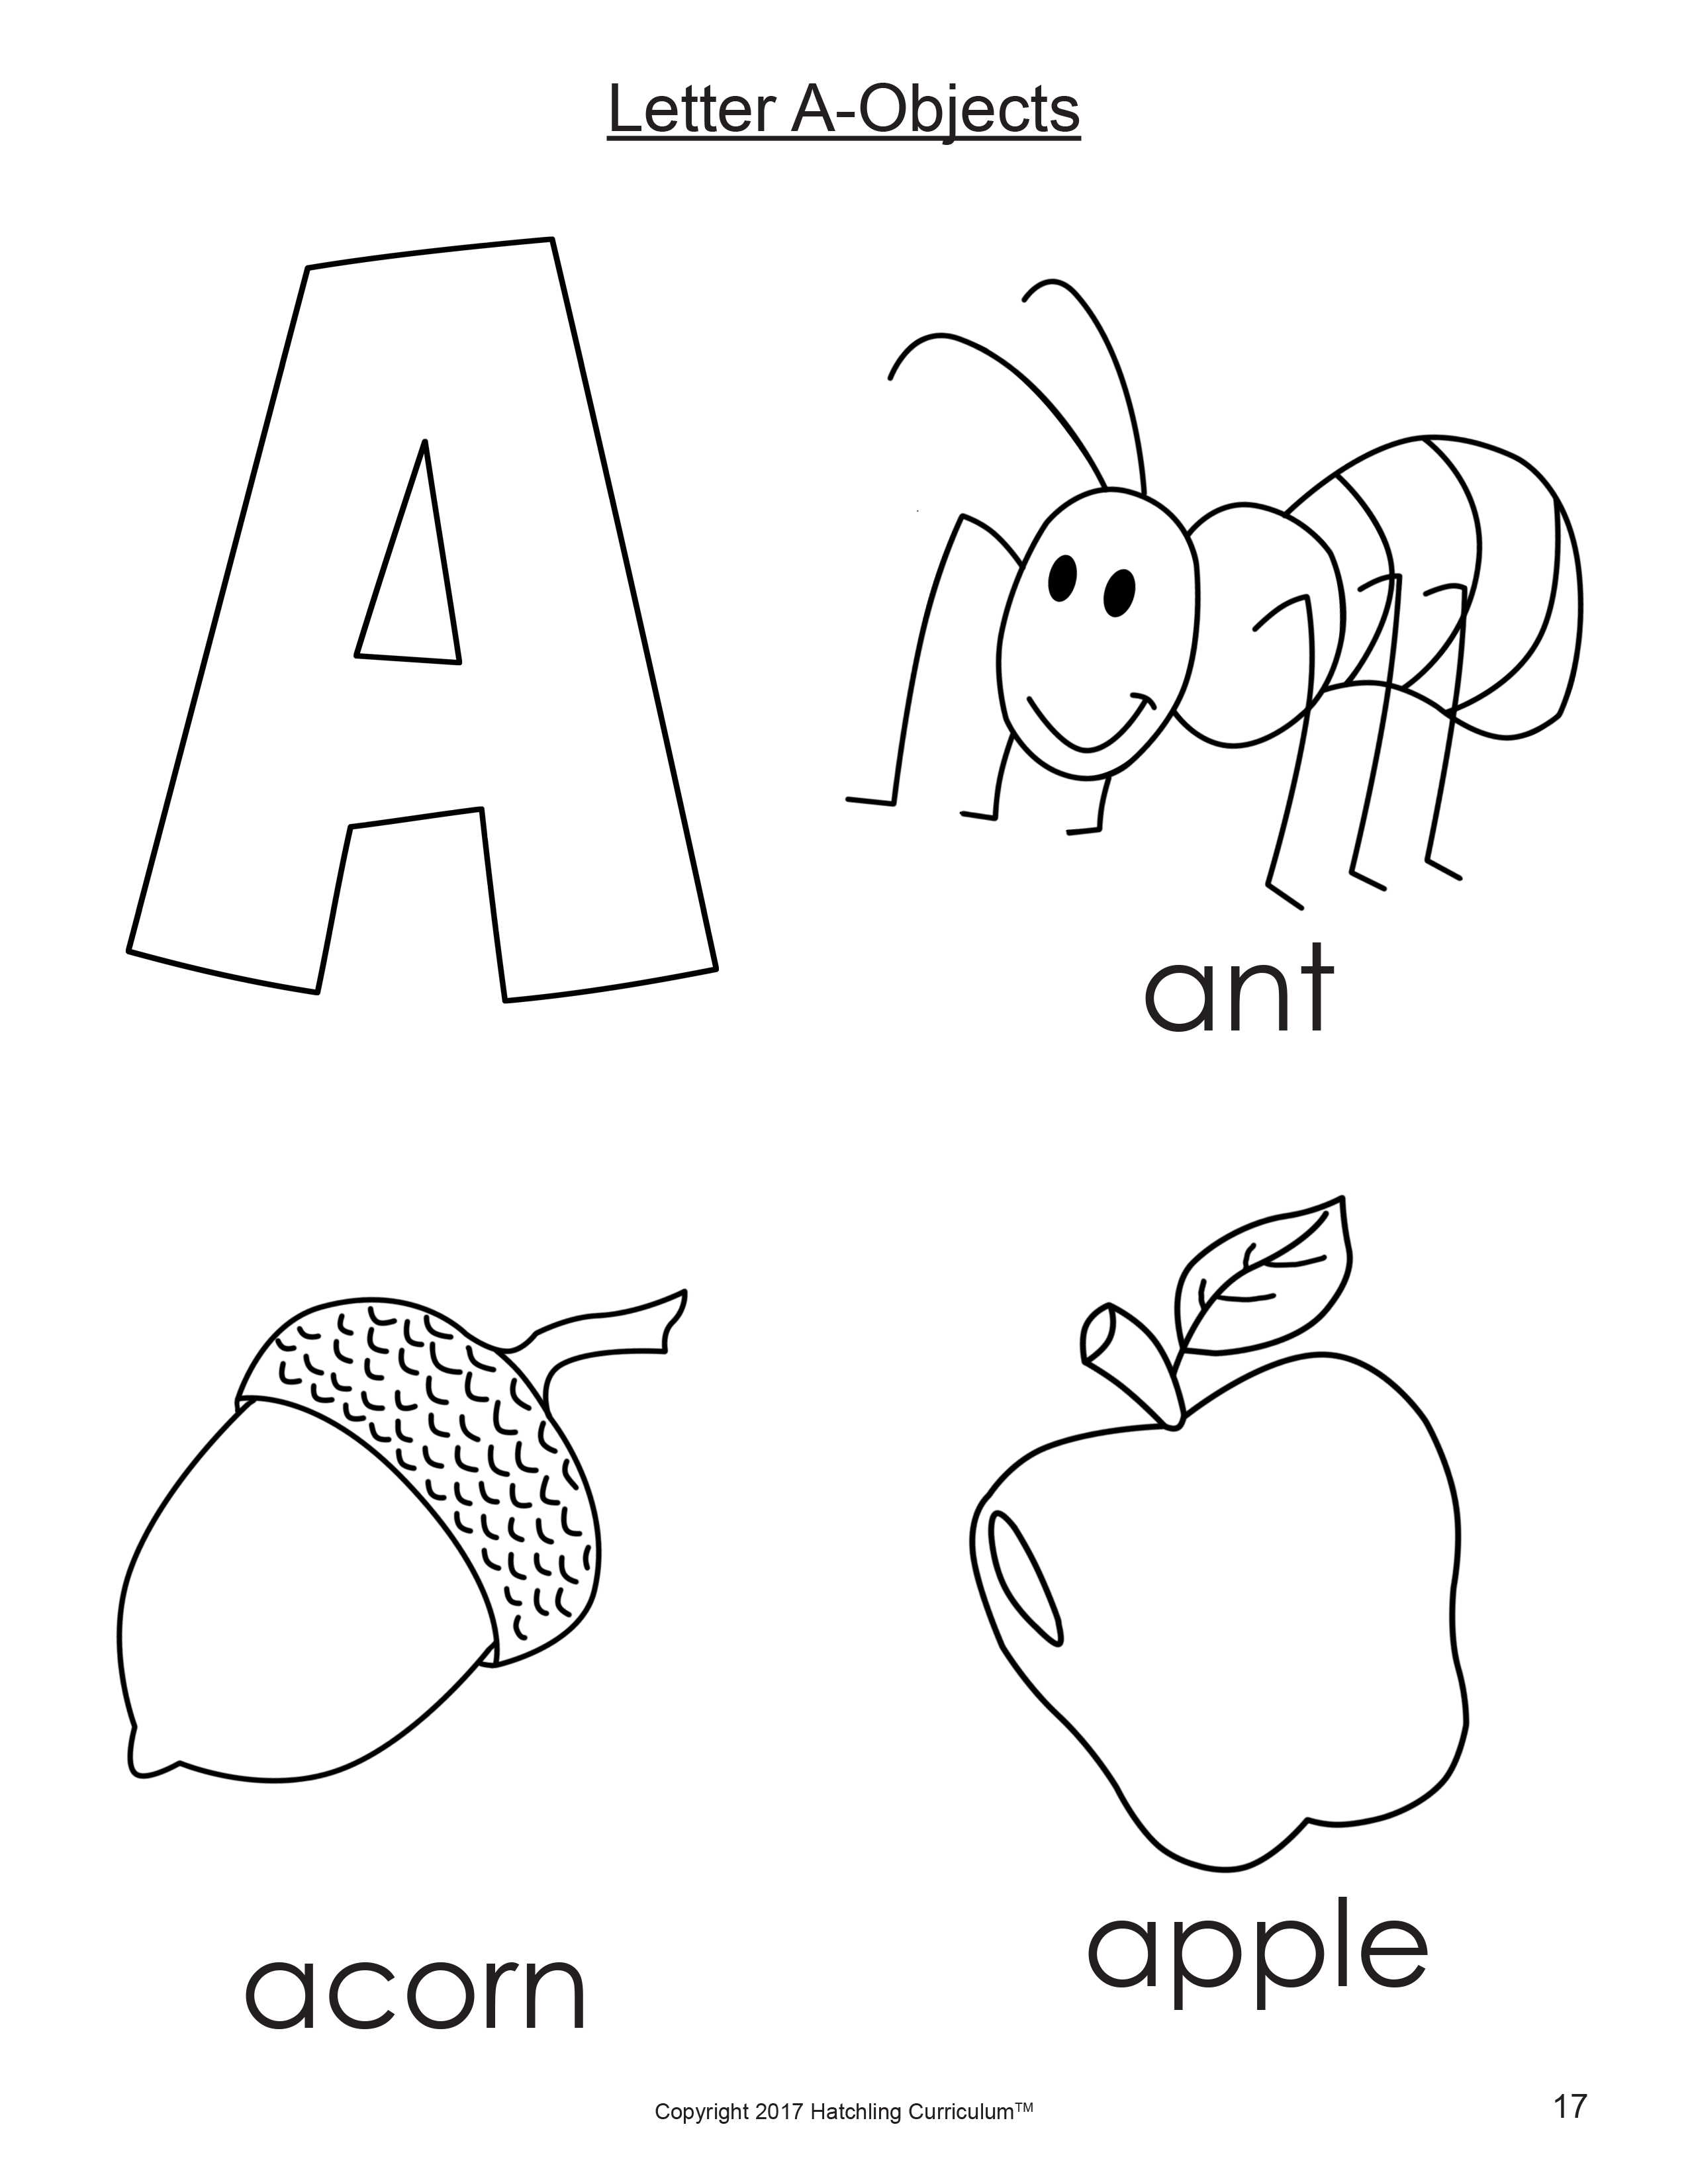 letter a coloring pages free get this letter a coloring pages animals 734n0 free a letter coloring pages